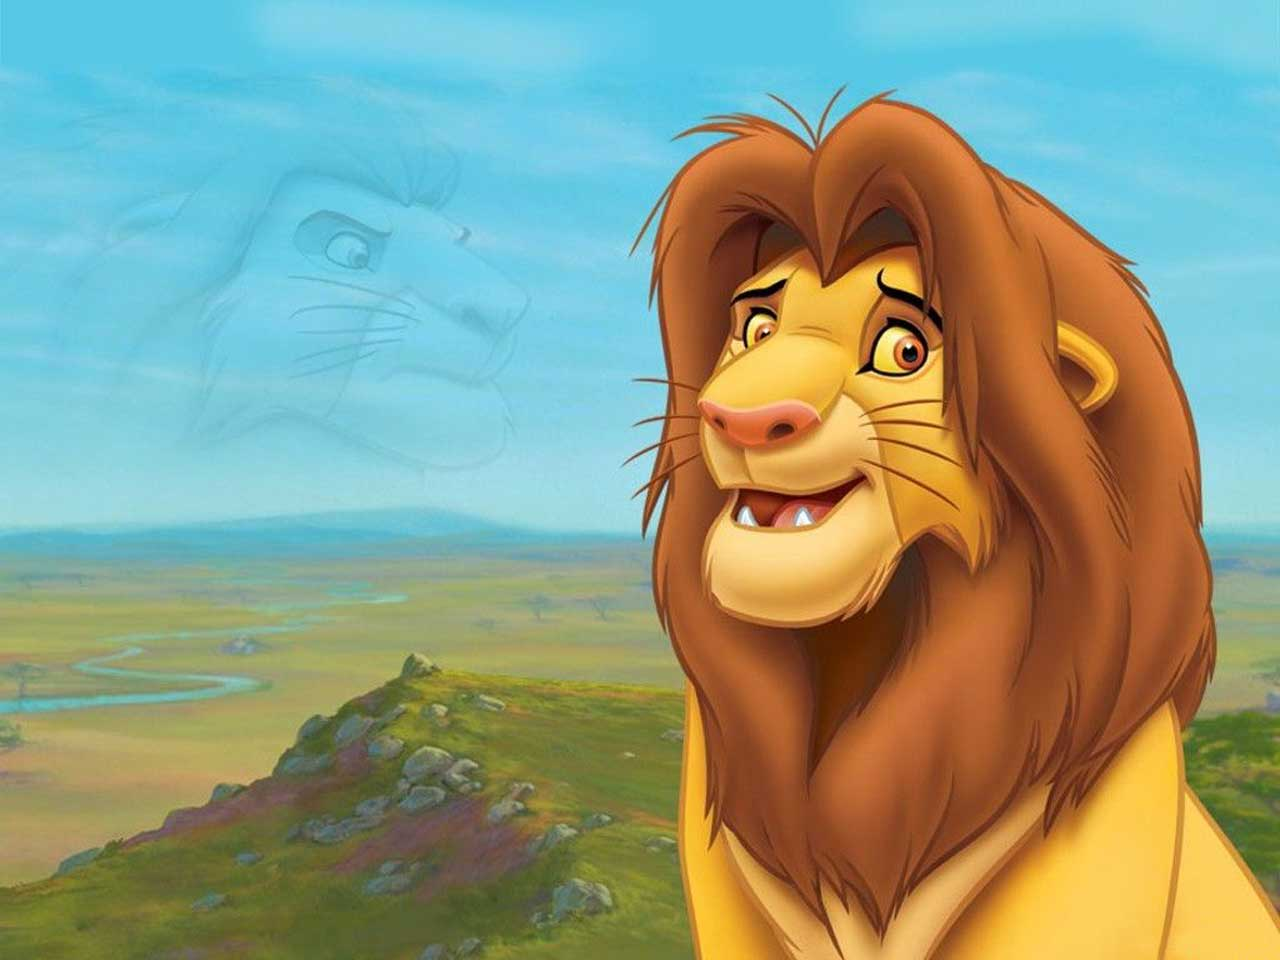 christine bailey: lion king wallpaper hd